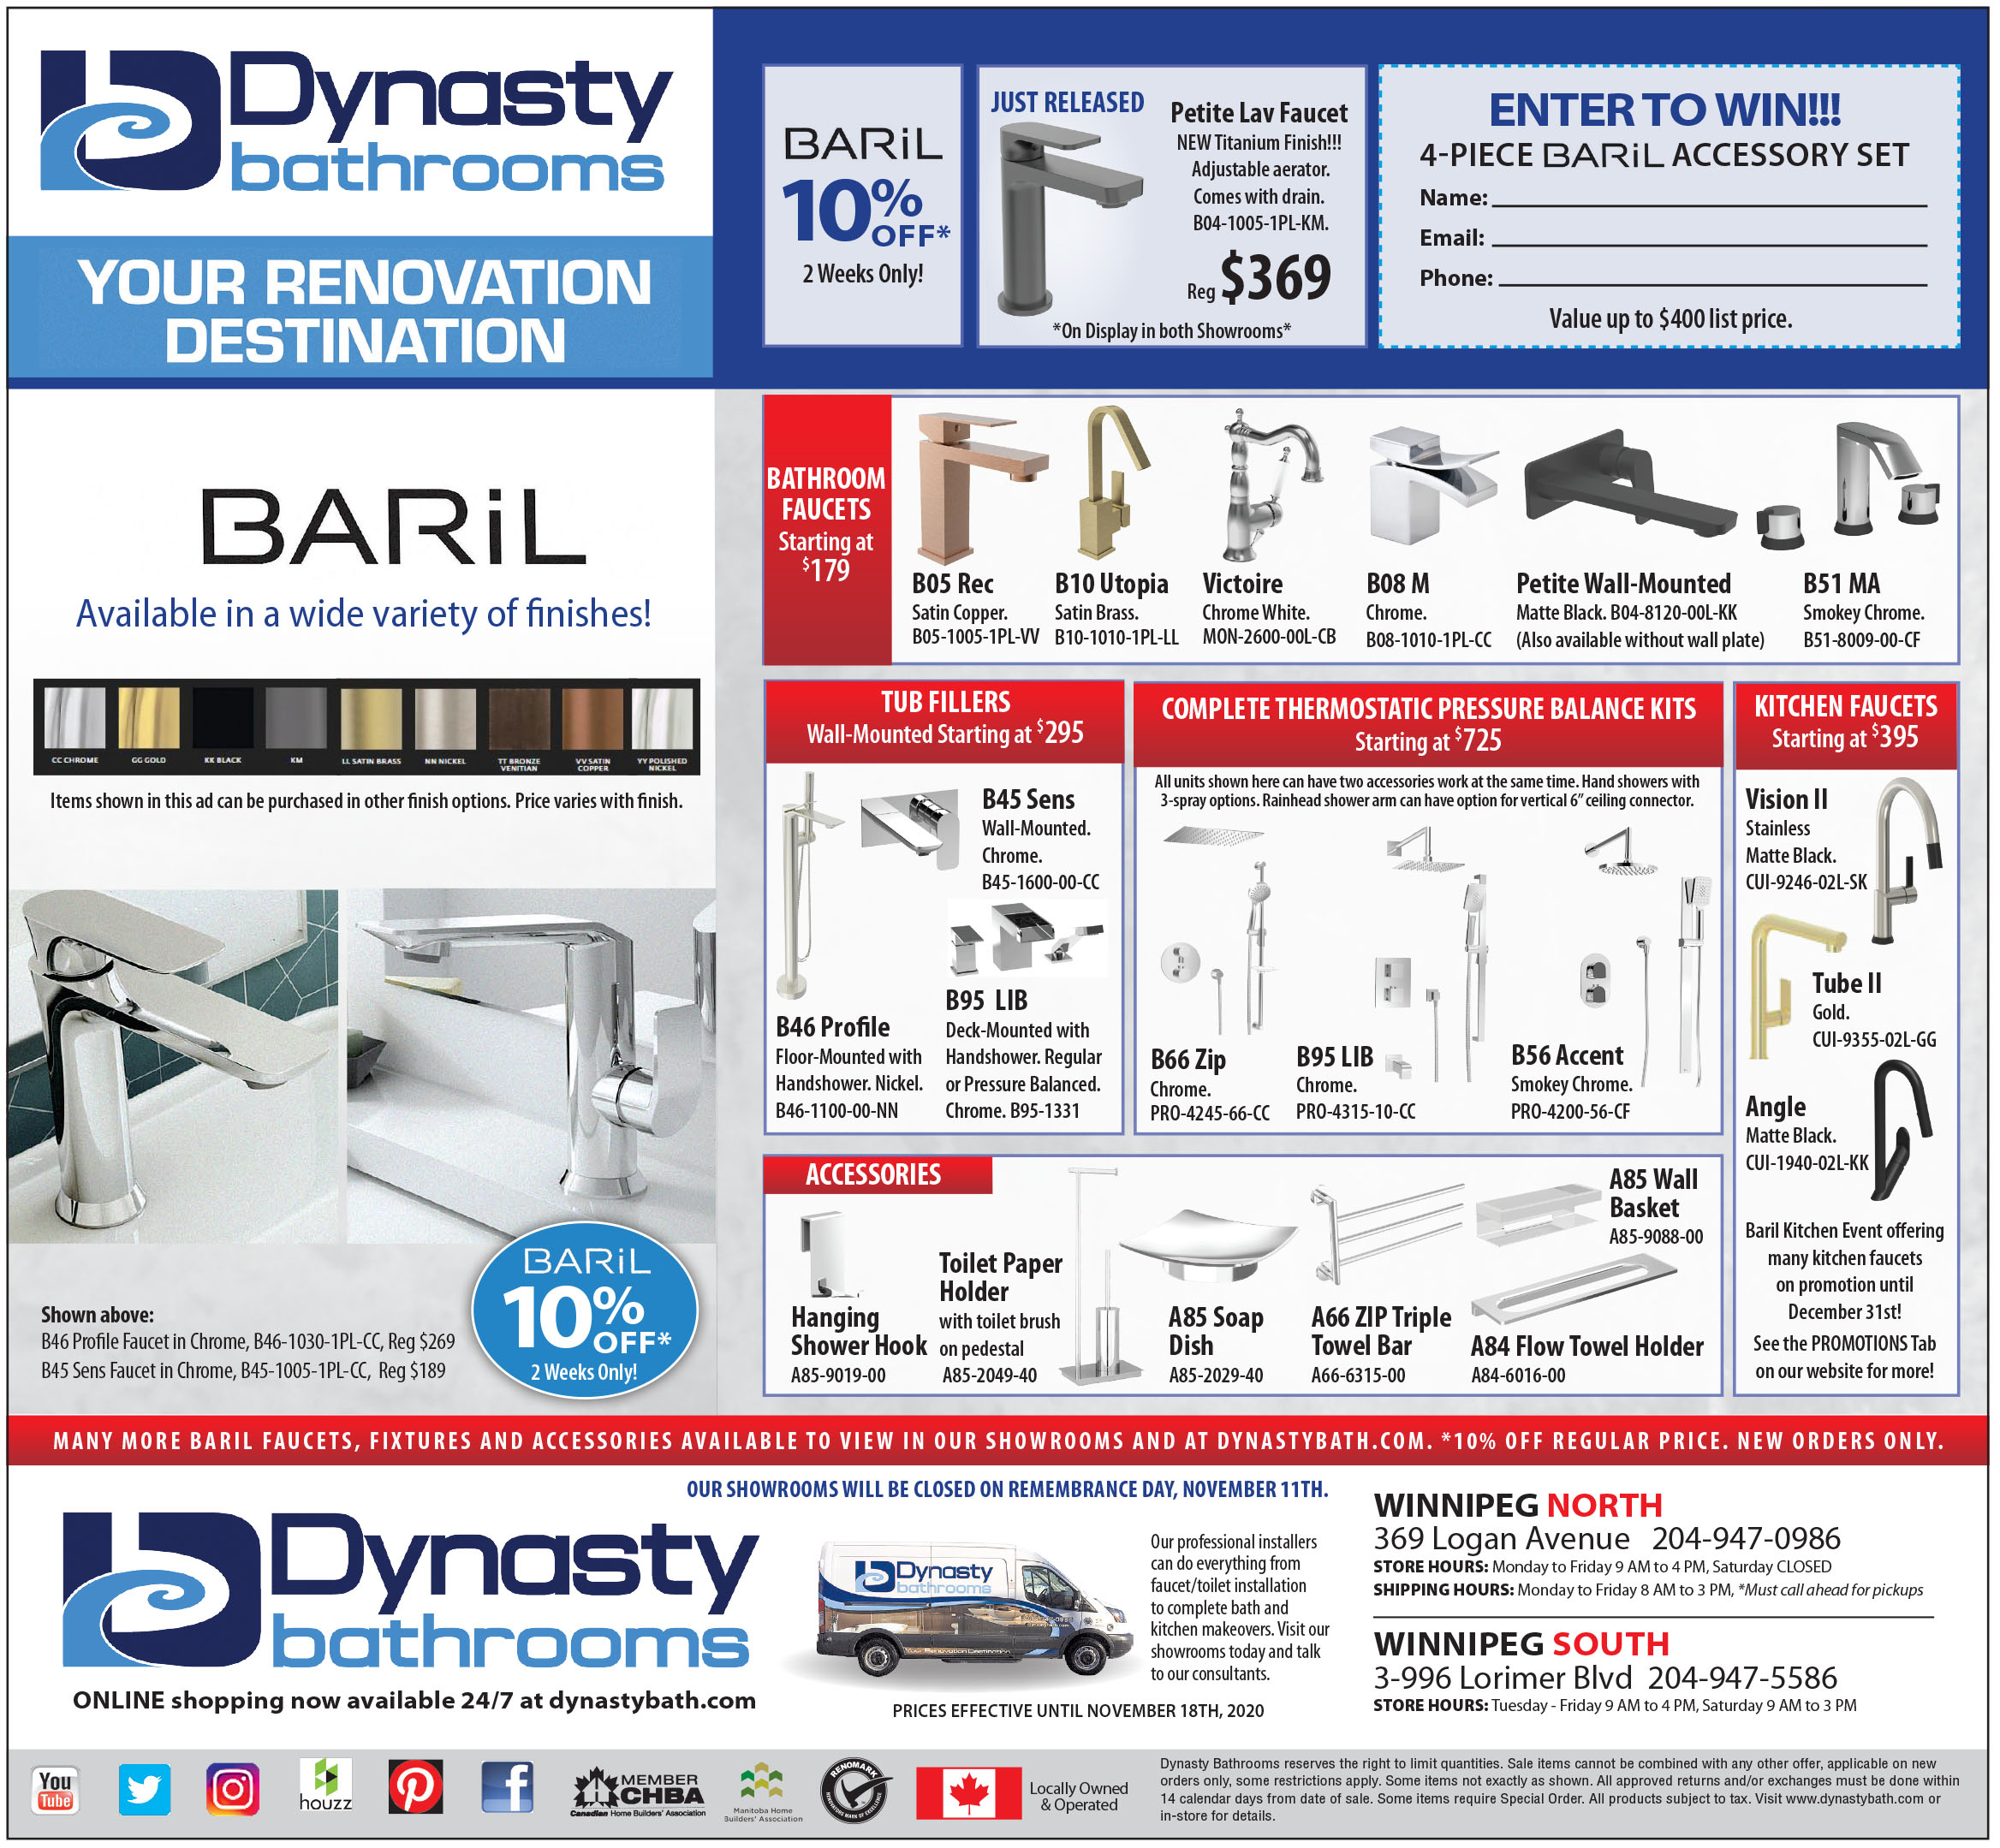 Baril 10% Off Promotional ad